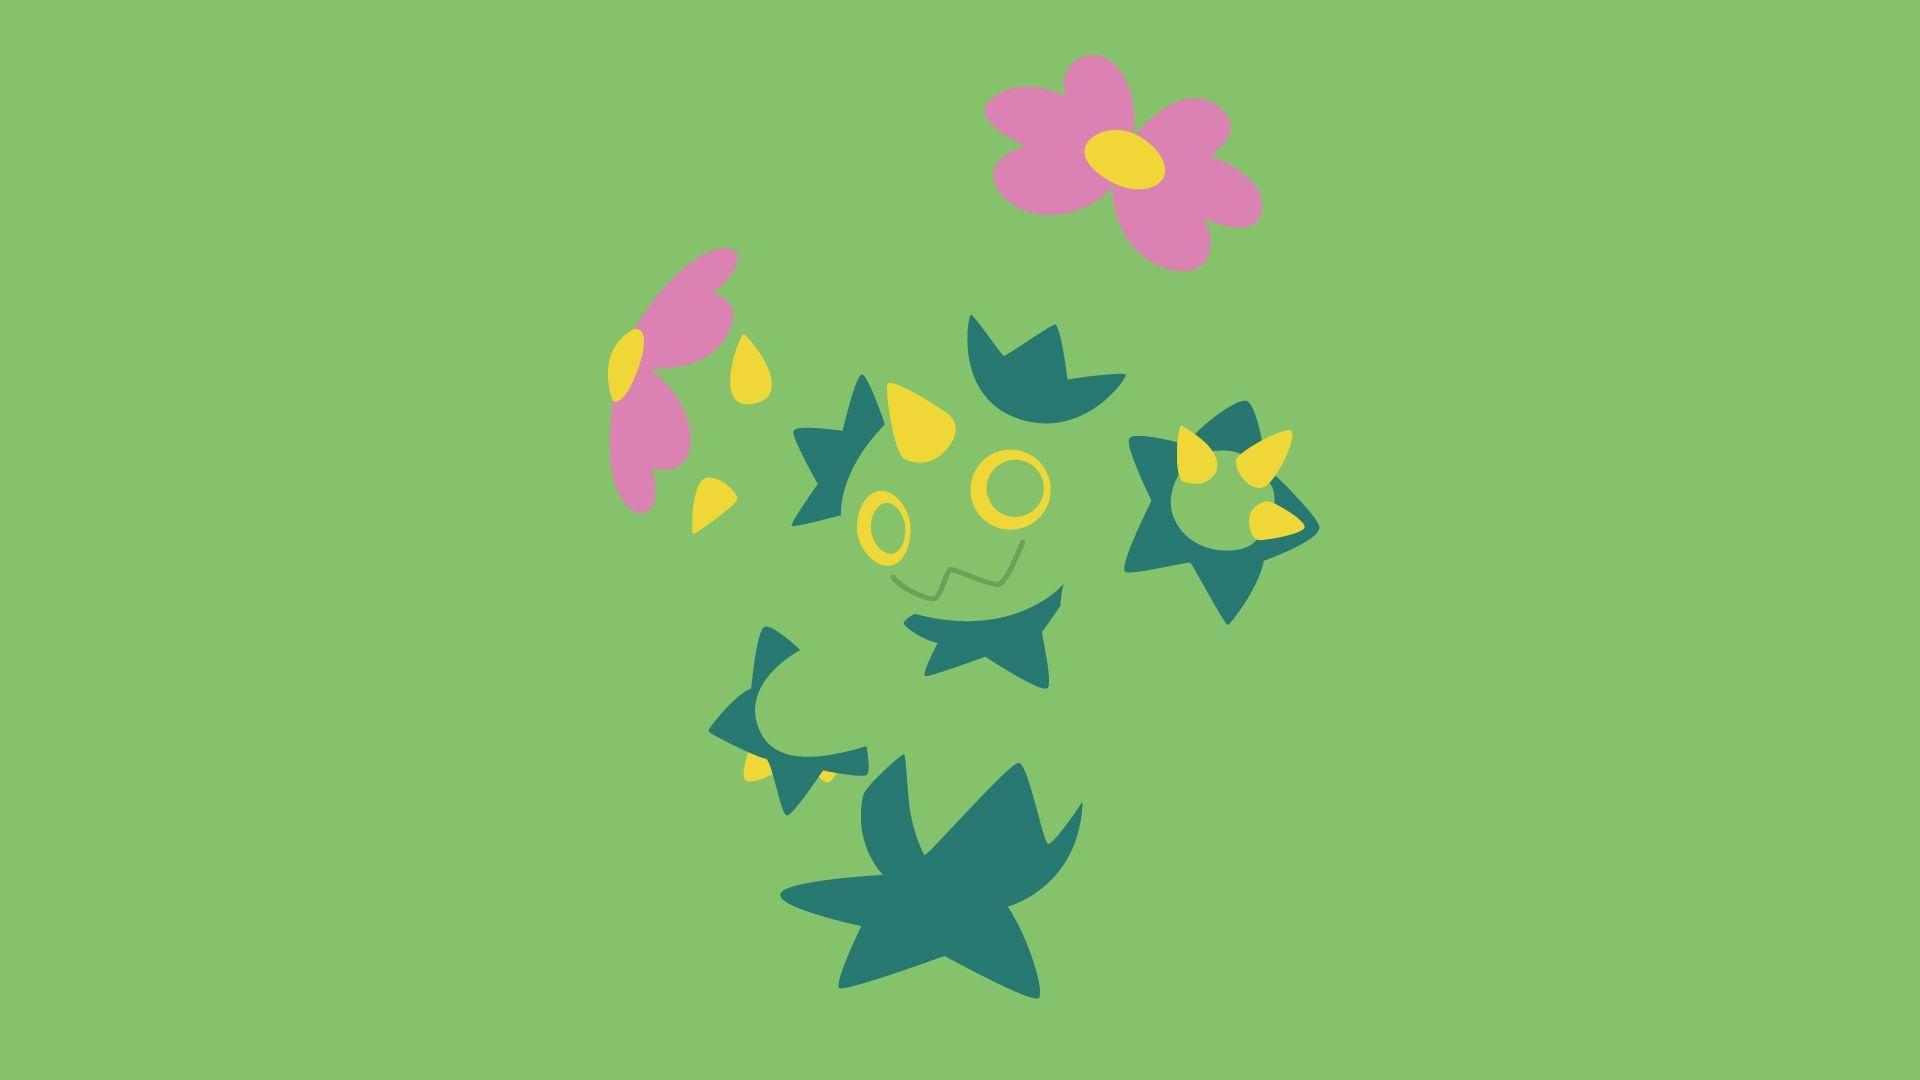 Maractus Minimalist Wallpapers by Krukmeister